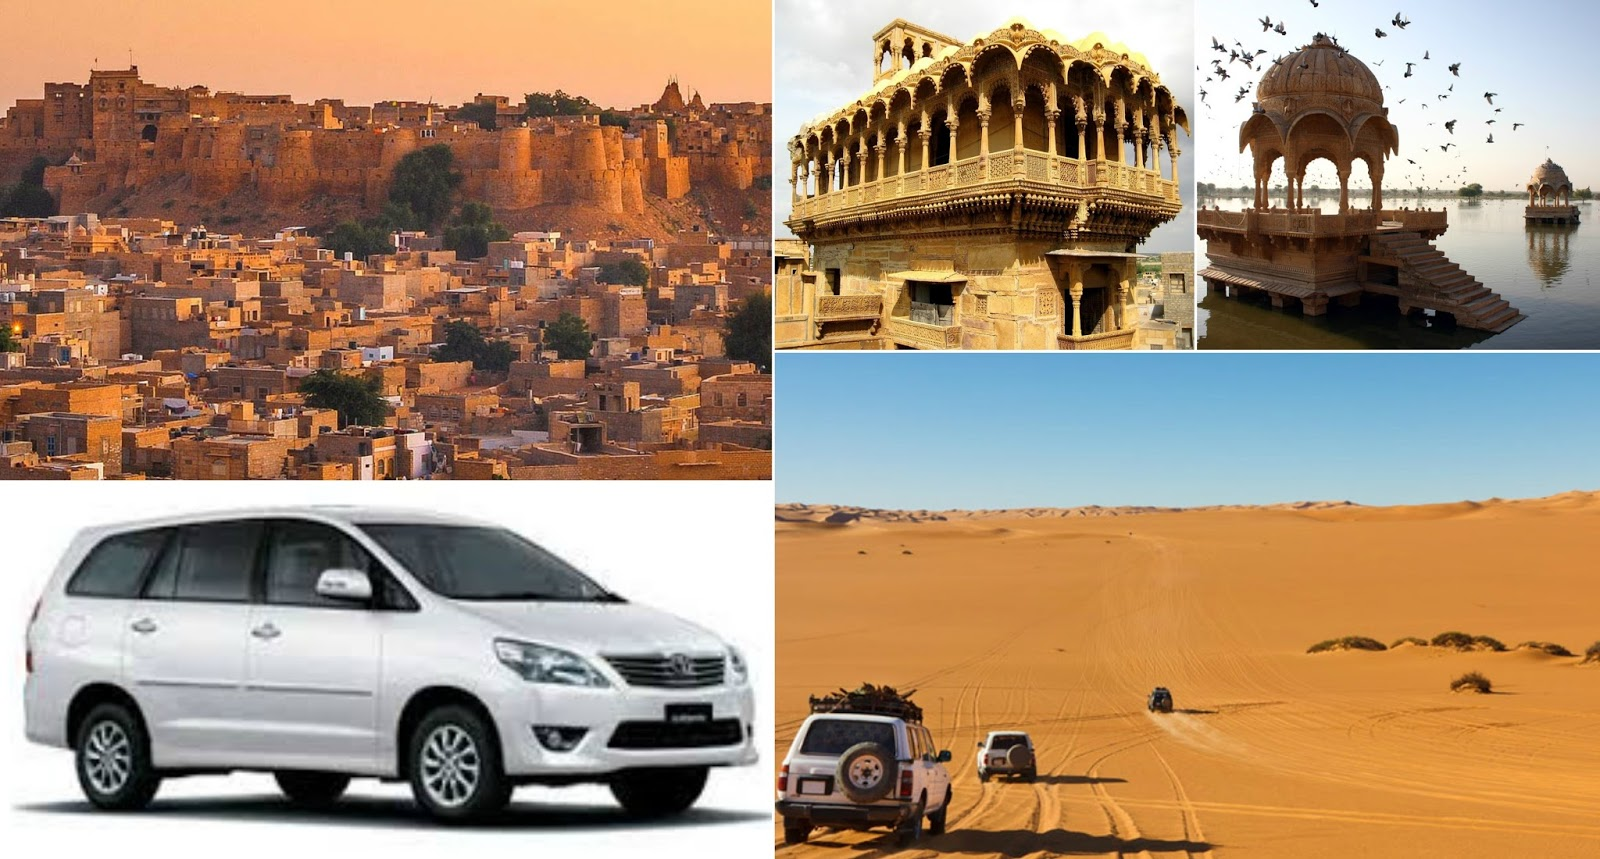 Jaisalmer Sightseeing With Royal Taxi Cabs